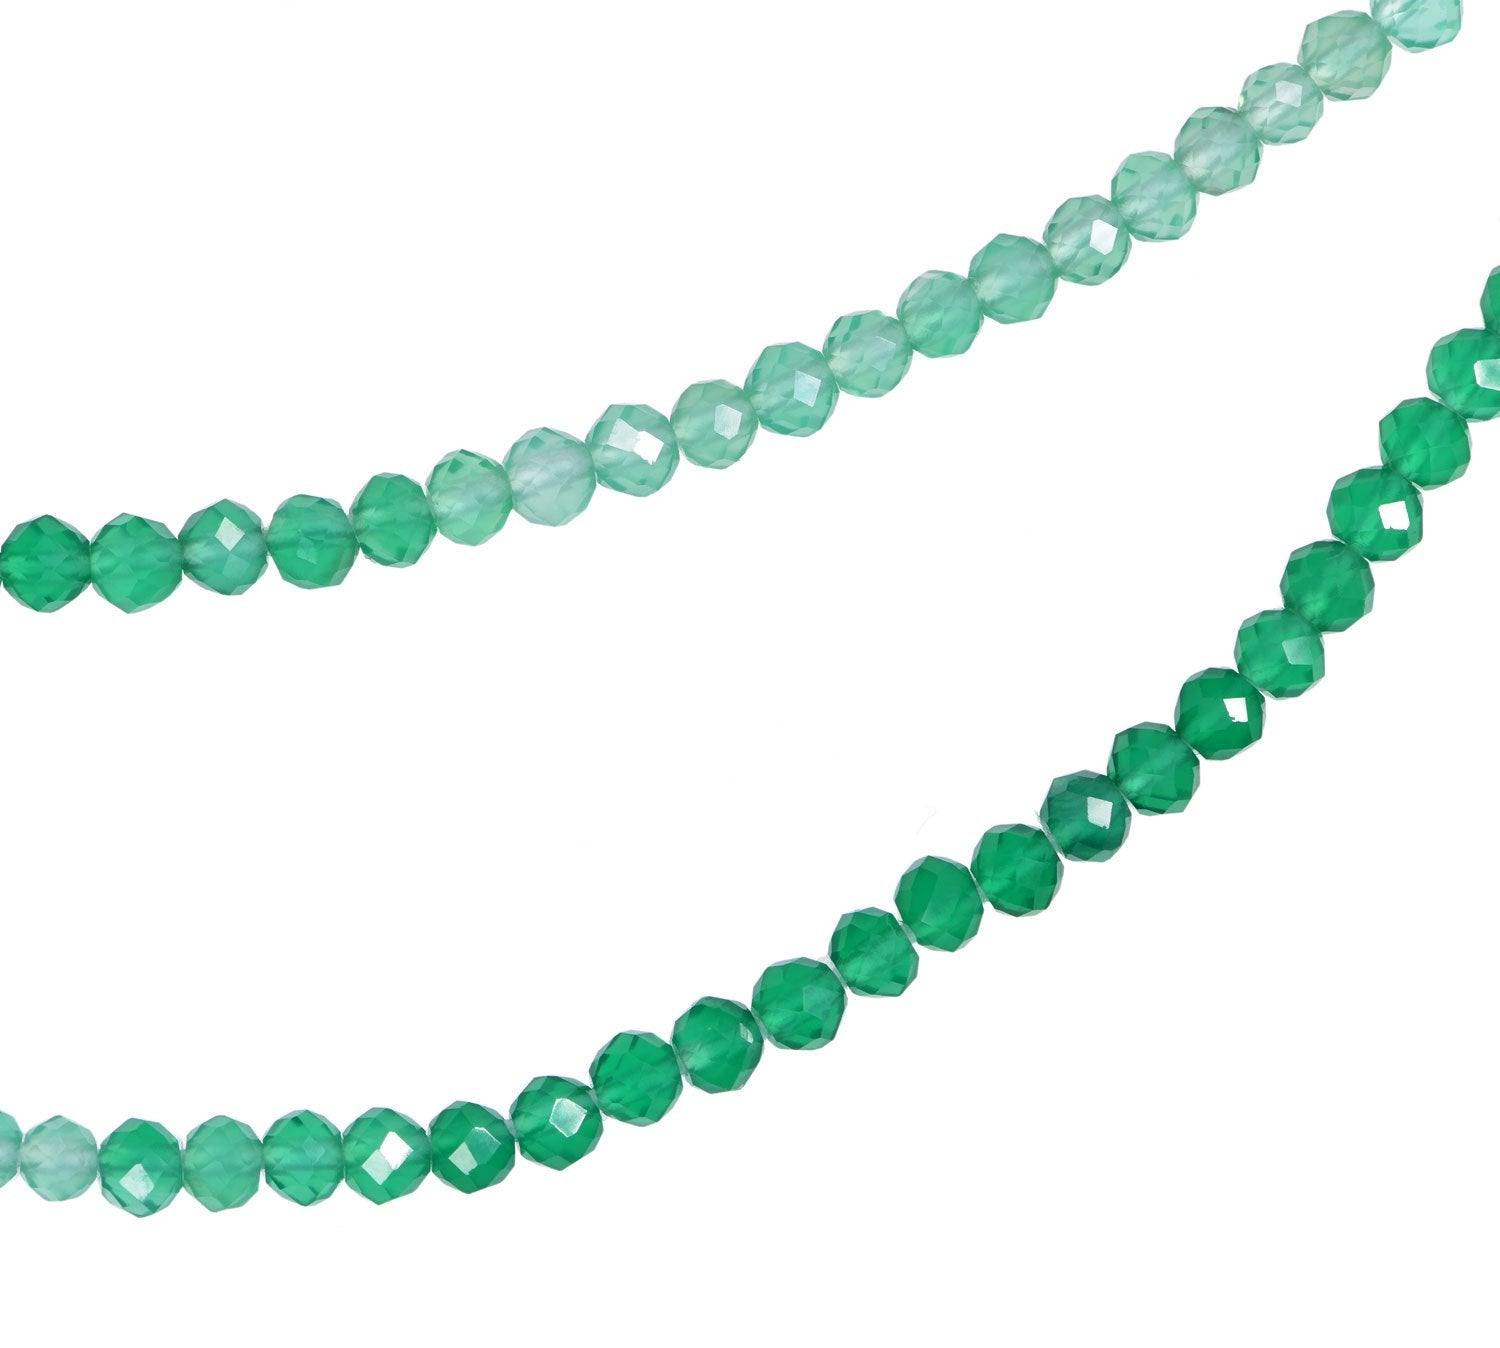 Shaded Green Onyx 2.25mm Faceted Rondelle Beads Strand